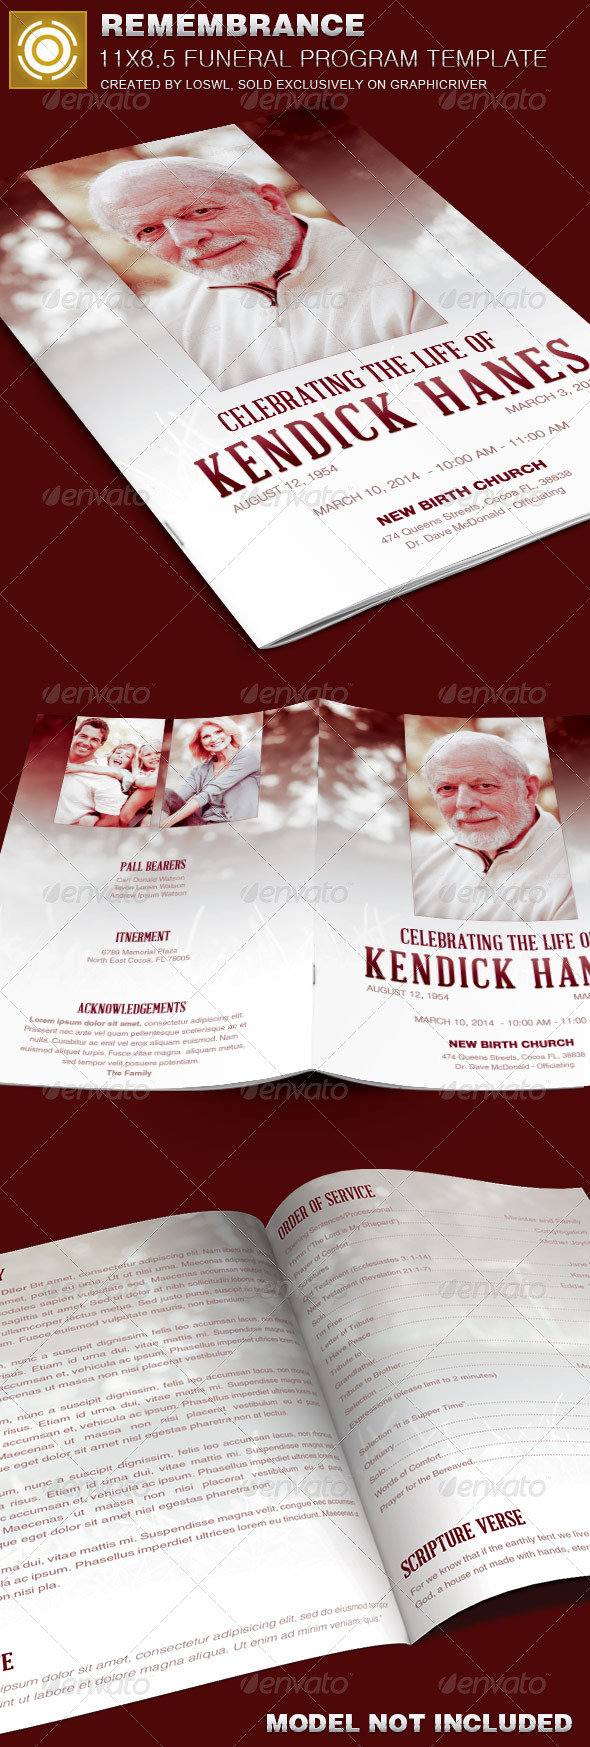 GraphicRiver In Remembrance Funeral Program Template 7633262